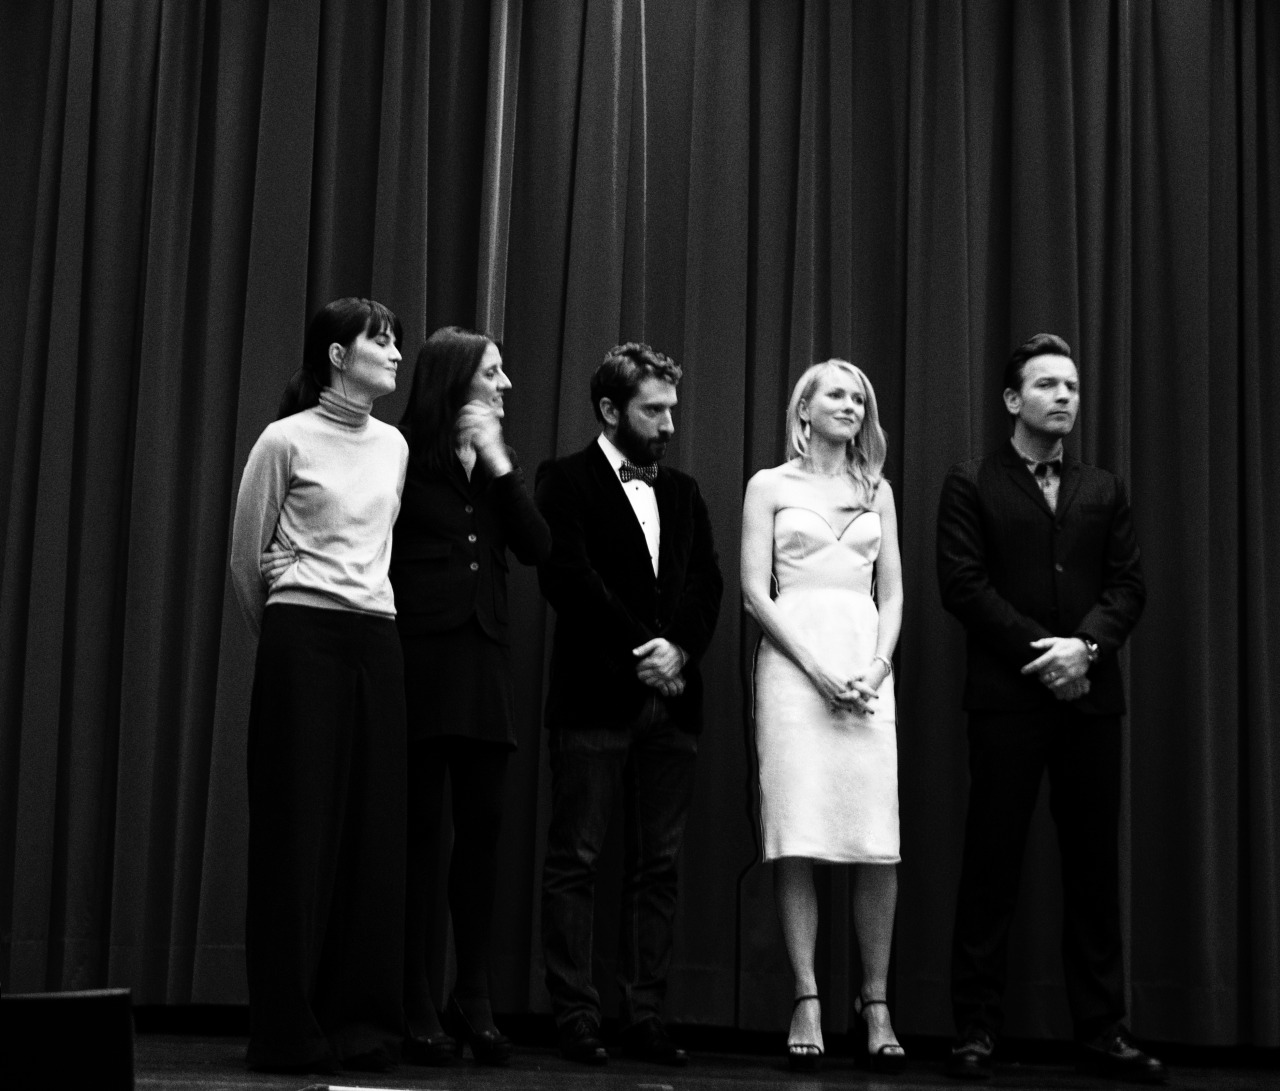 Taken right before we screened the movie, The Impossible. Maria Belon, whose story the movie is built upon, is on the far left, with producer Belen Atienza, director J.A. Bayona, and stars Naomi Watts, and Ewan McGregor.